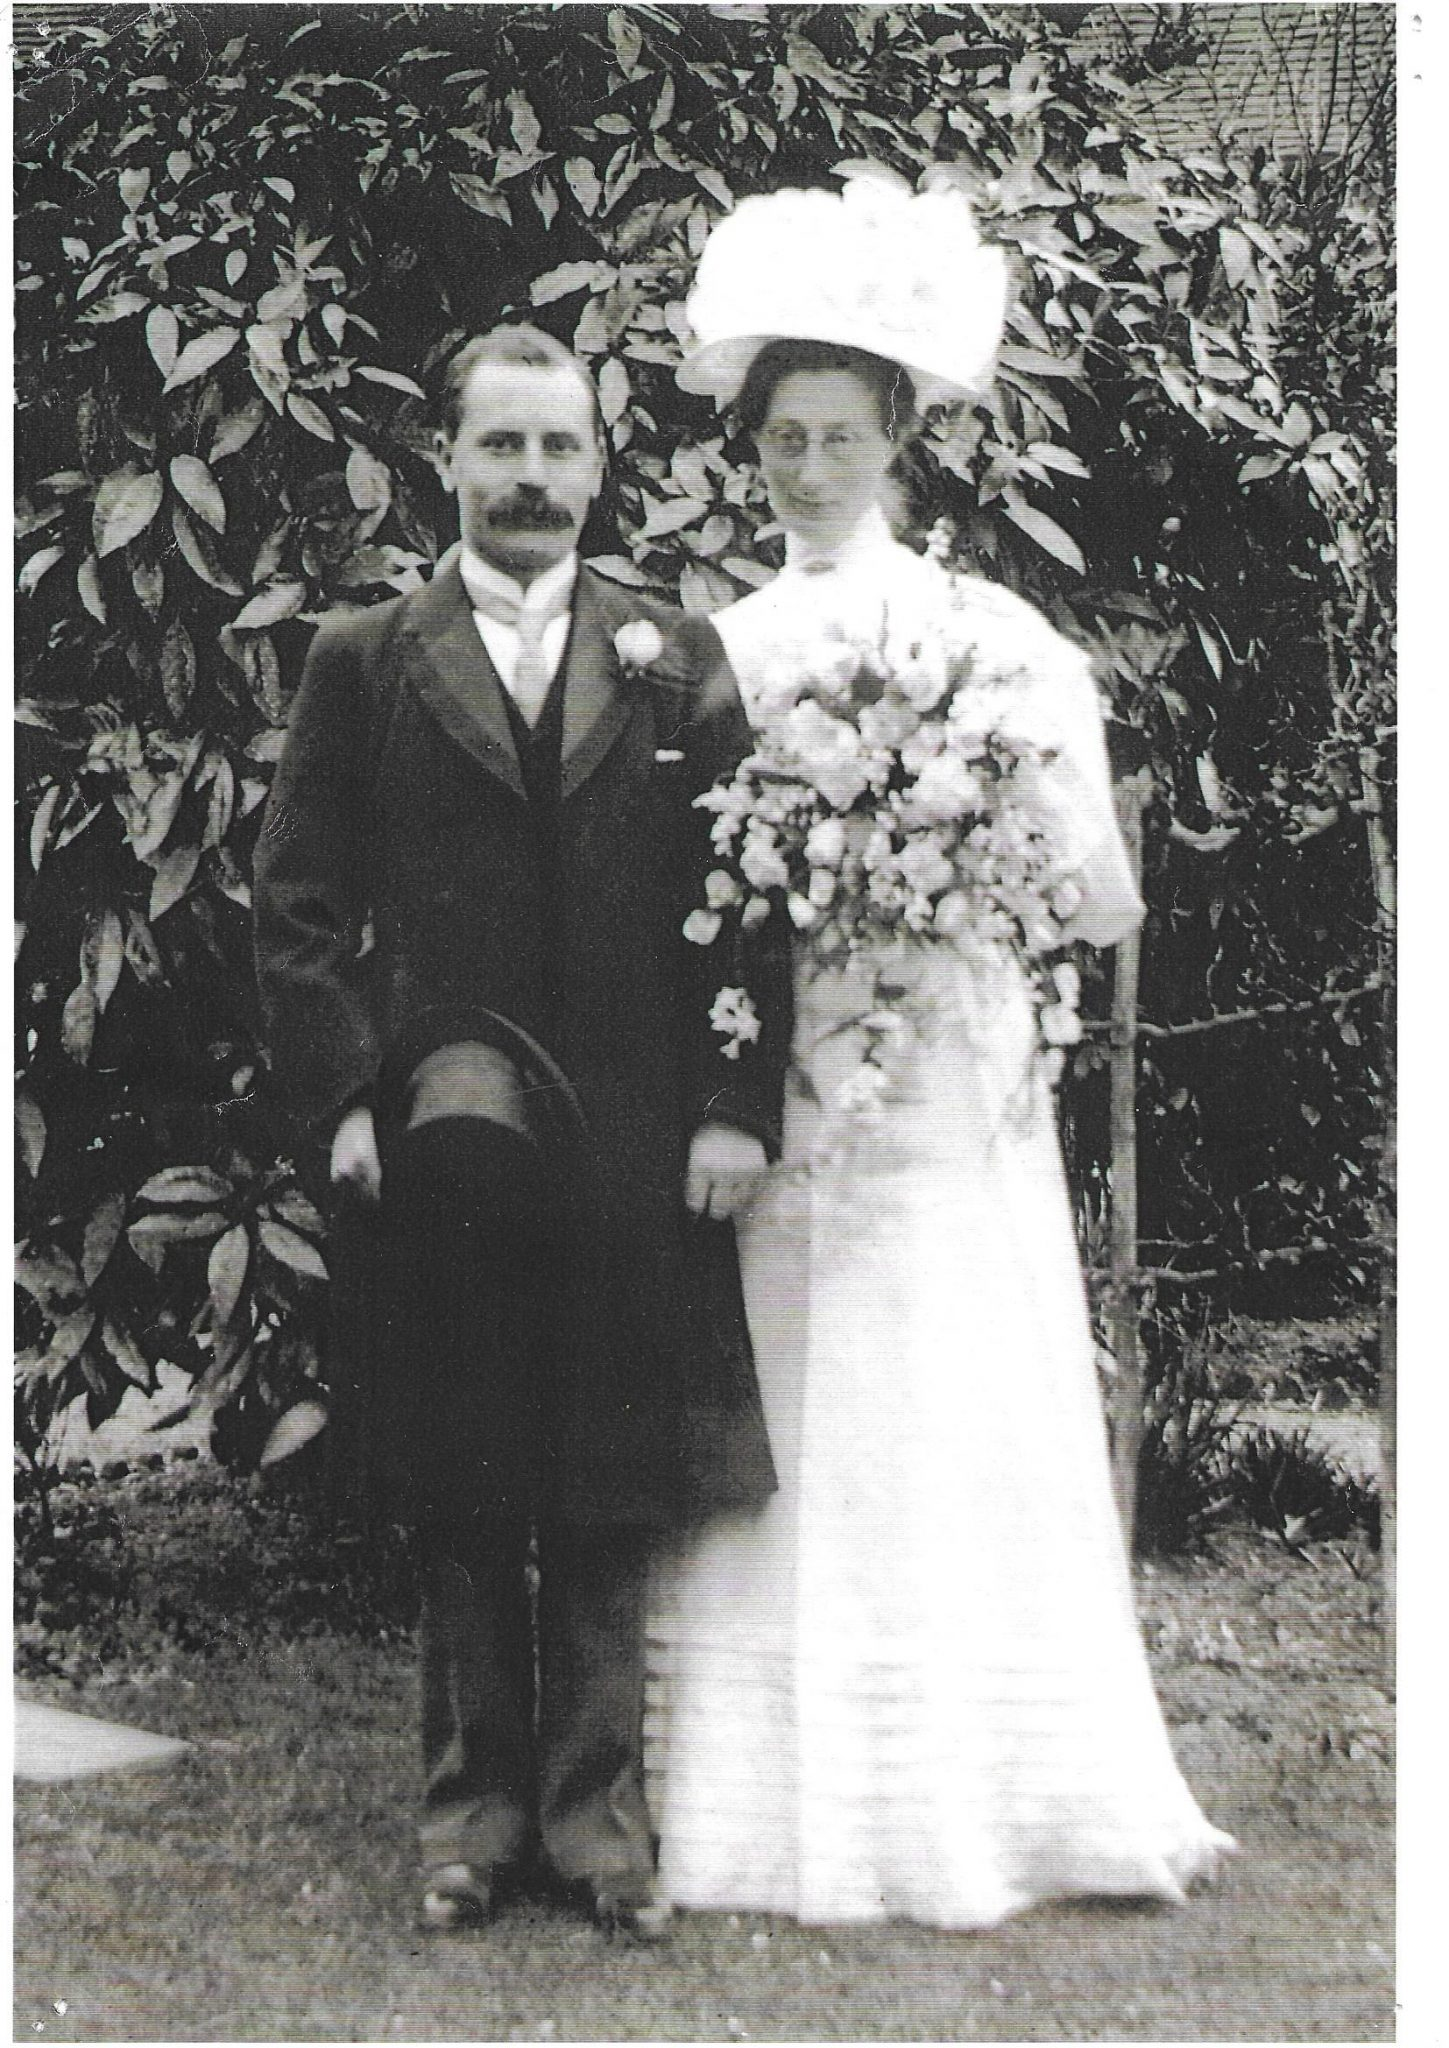 Margaret Tatchell and John Lewis on their wedding day in 1908